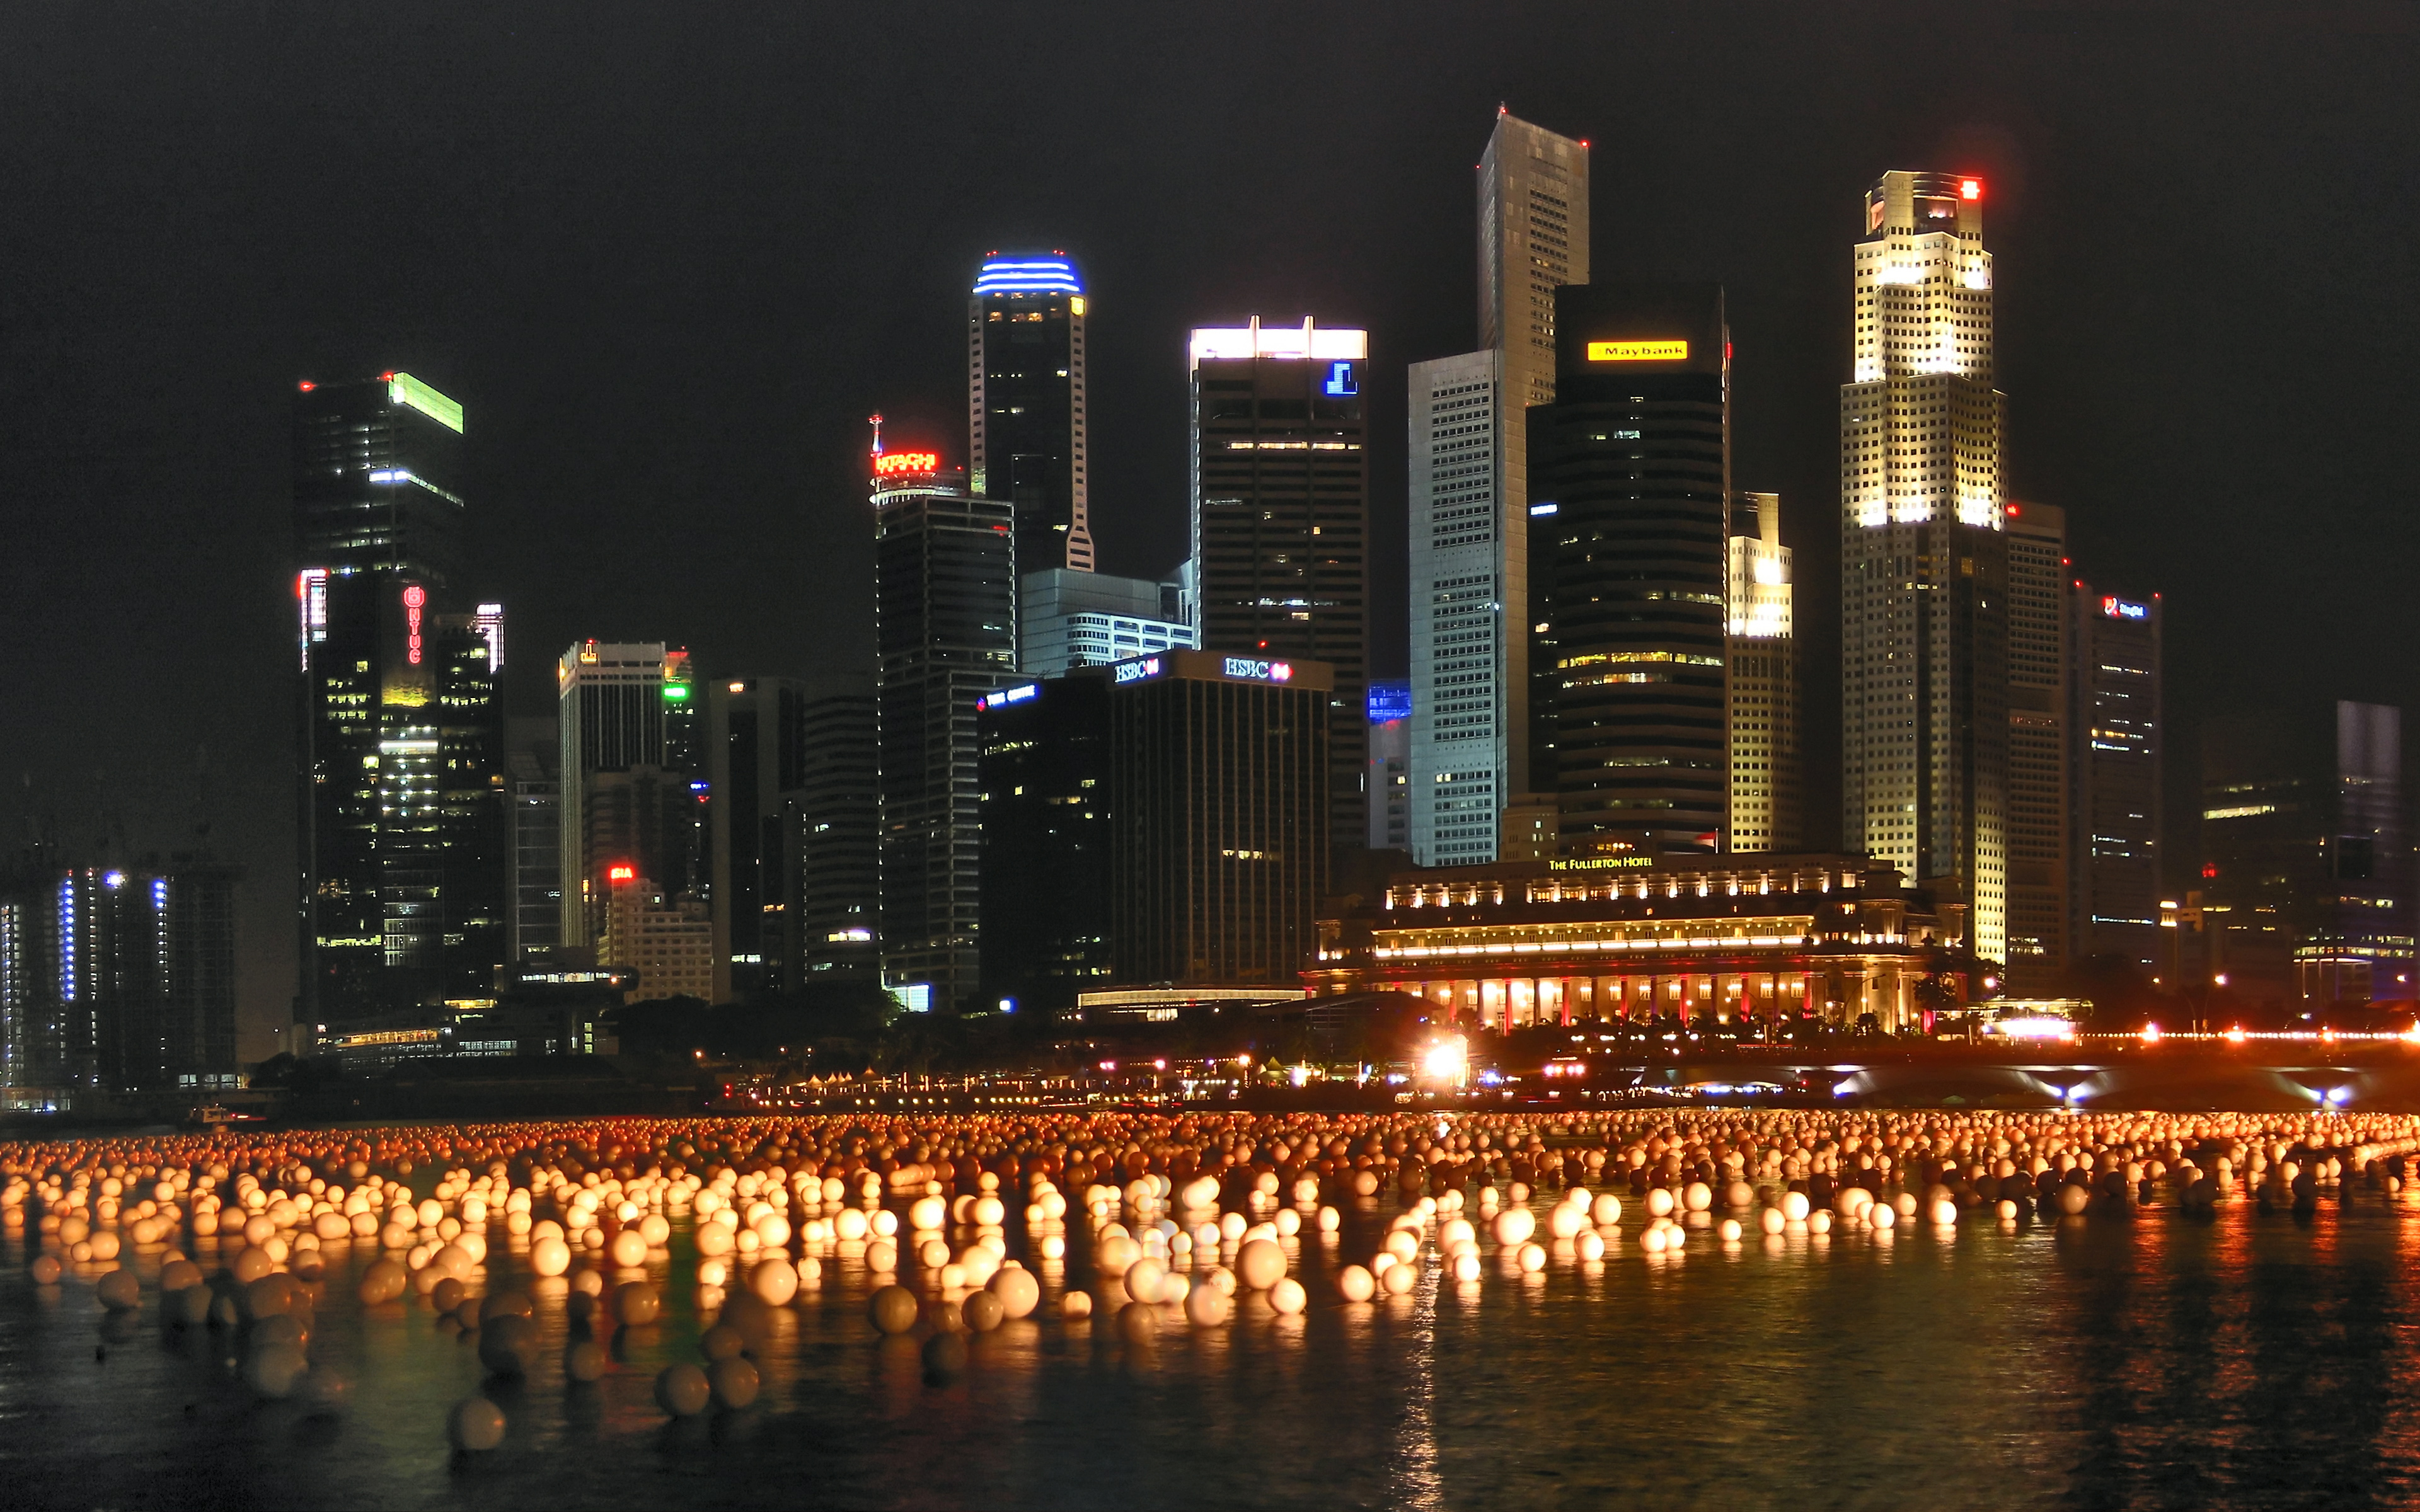 The skyline of Singapore as viewed at night. Night photography ...